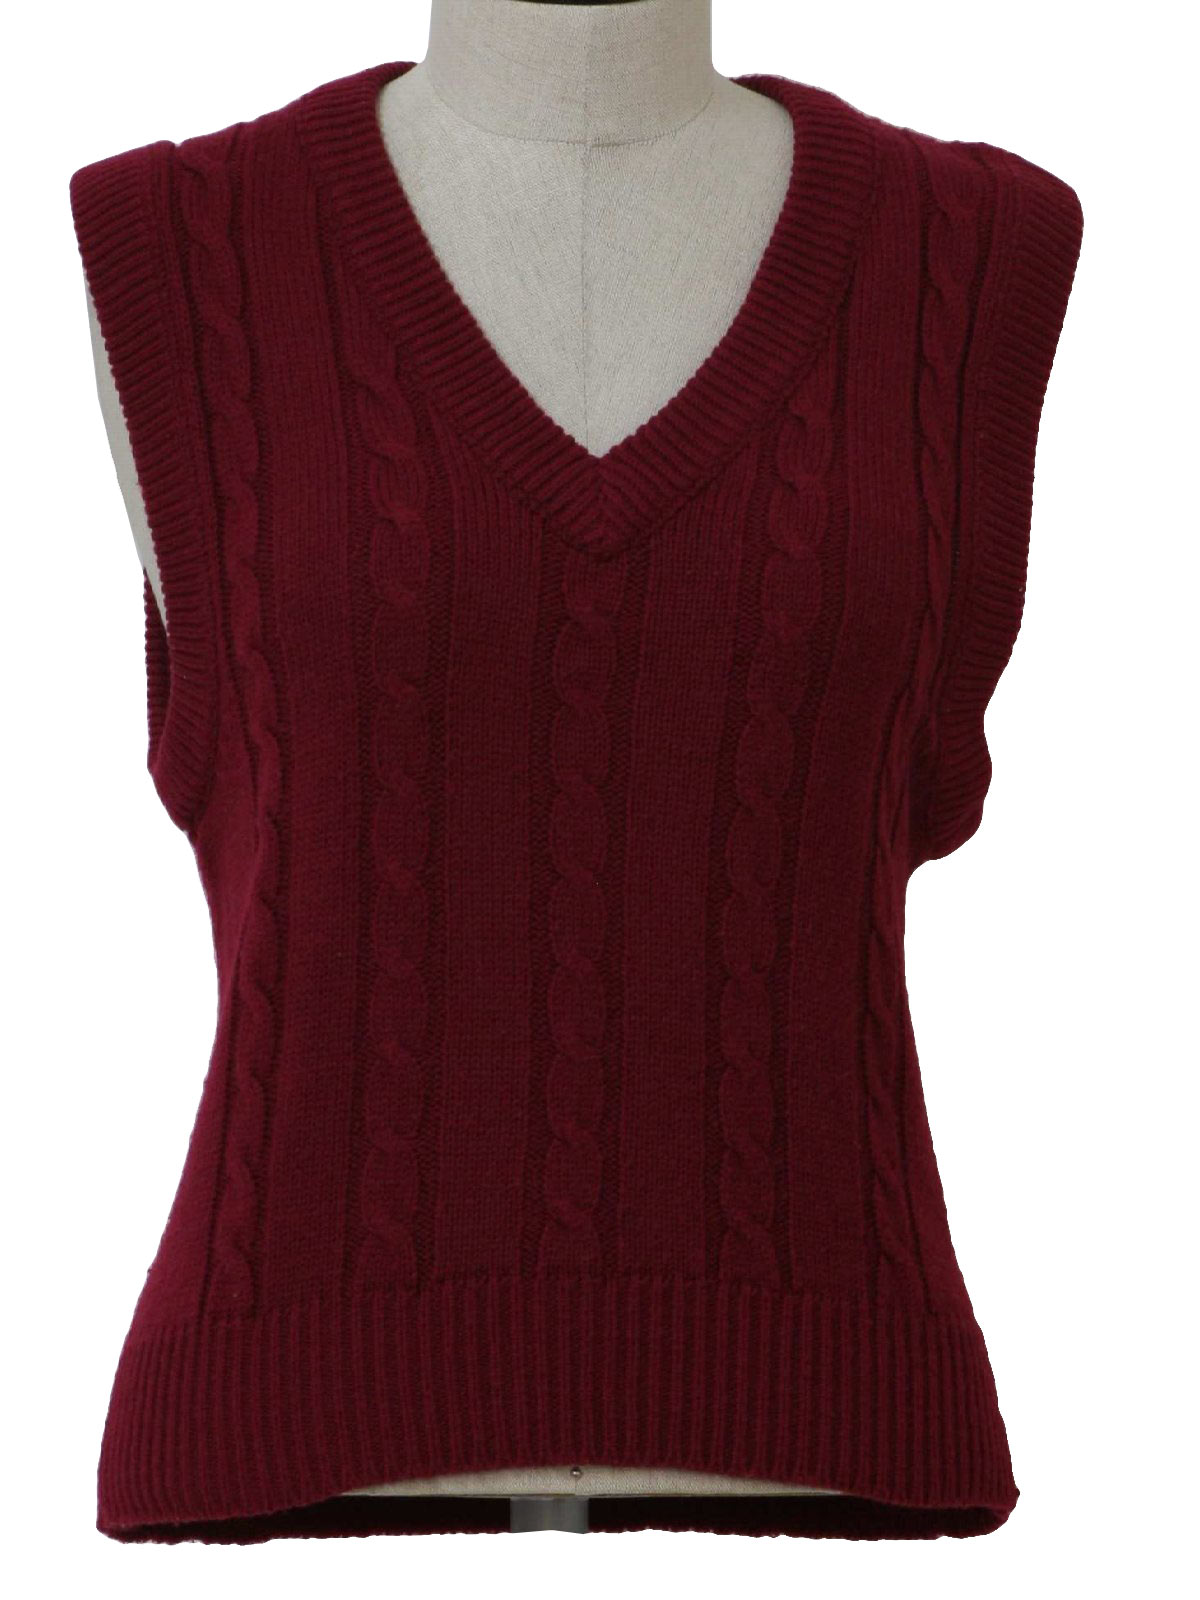 Vest Jumper Knitting Pattern : knitted vest pattern for women